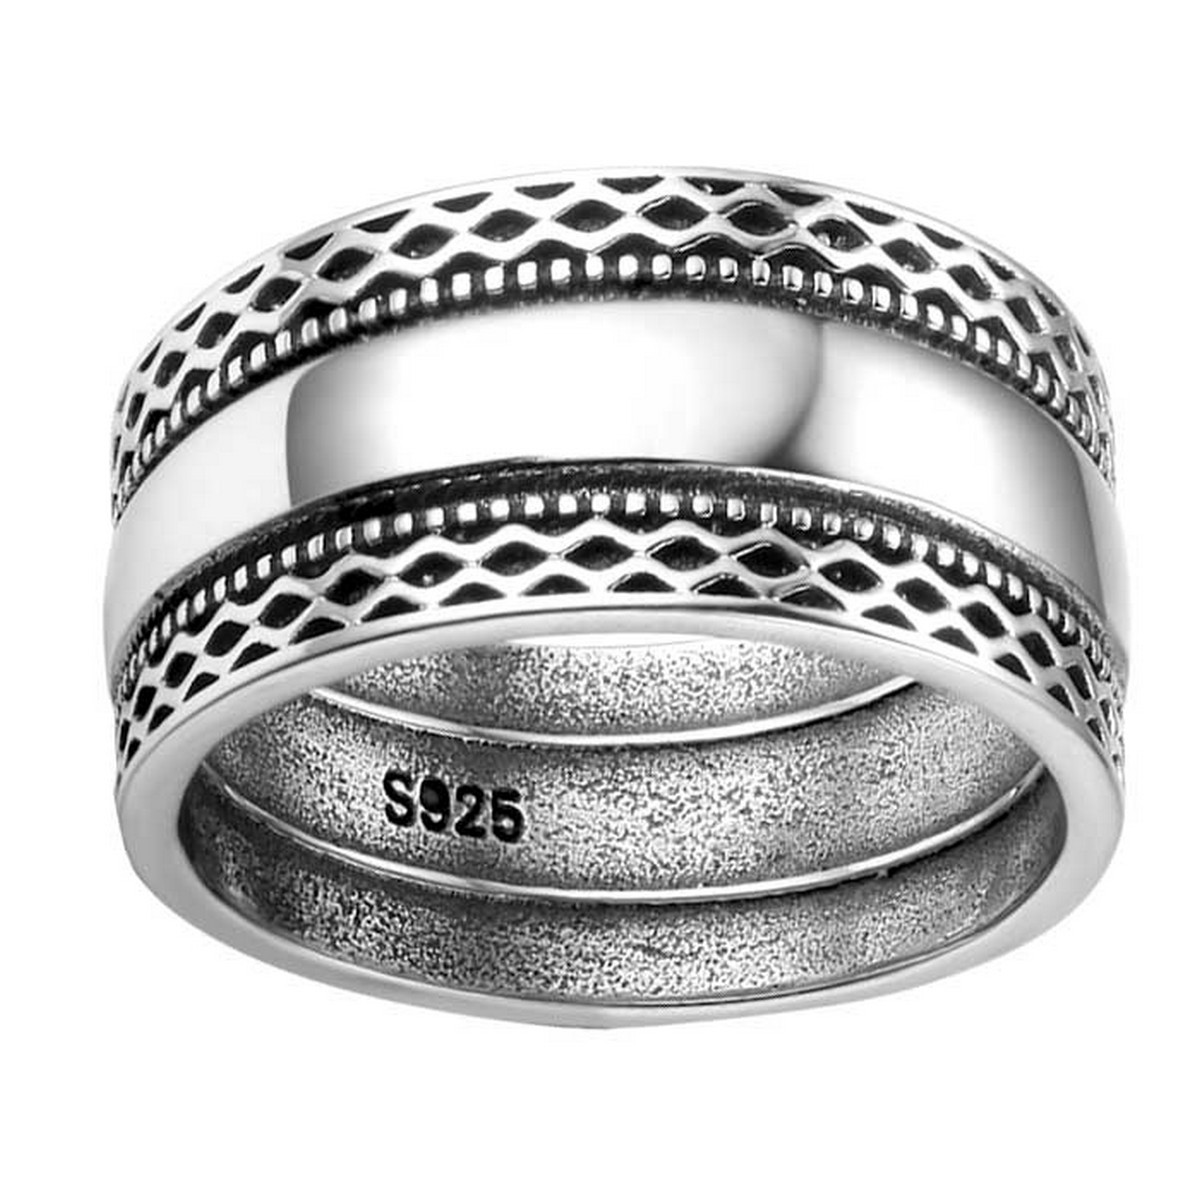 Isa | Ring 925 zilver